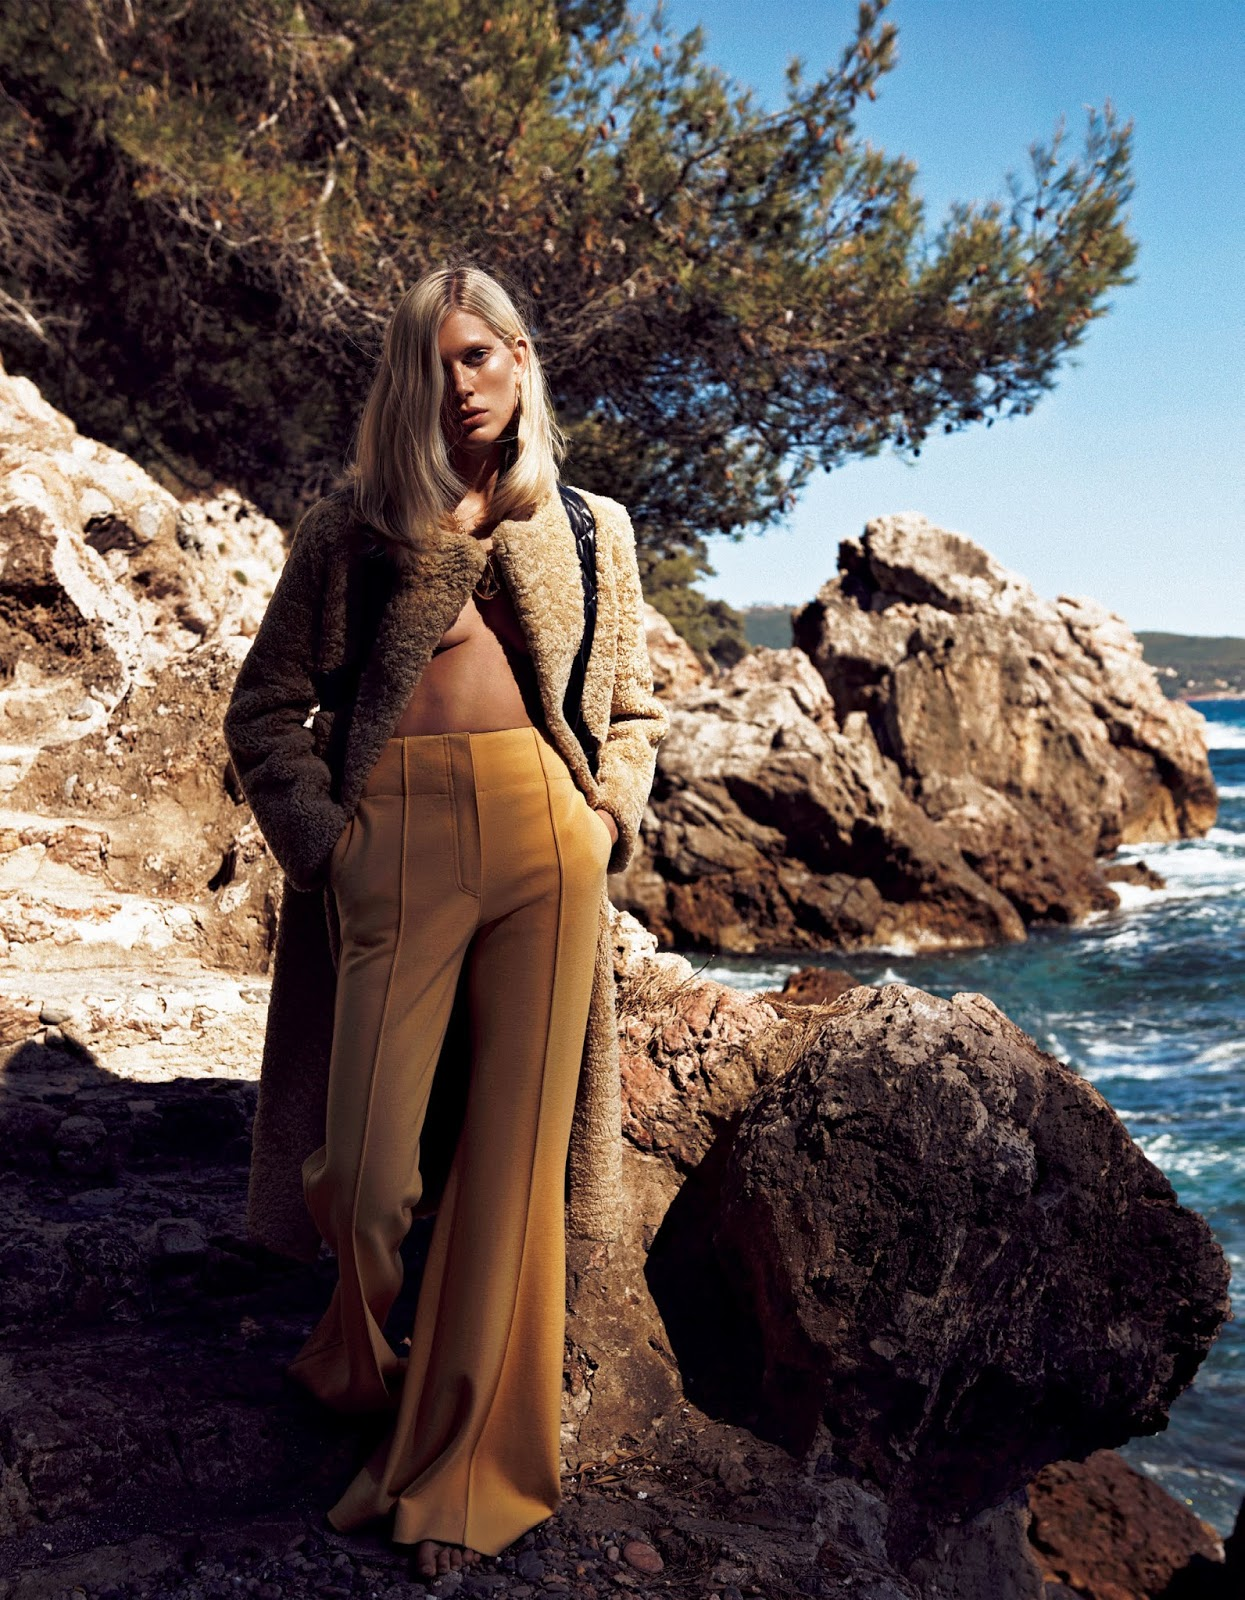 Iselin Steiro by Lachlan Bailey for Vogue Japan October 2016